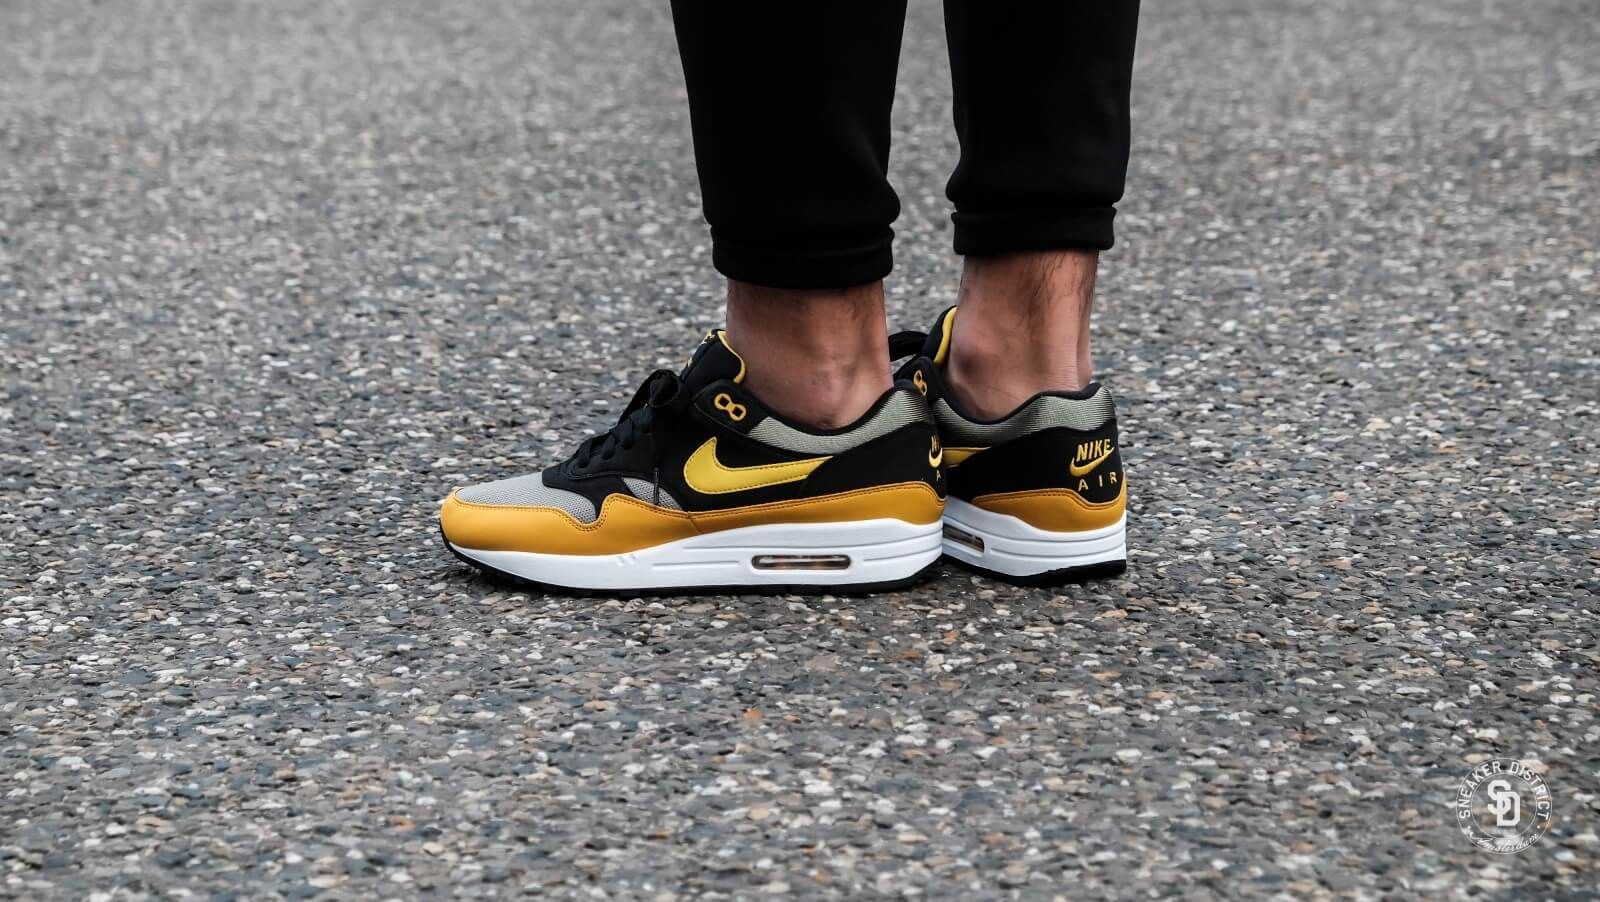 best cheap 4fed3 392ca Nike Air Max 1 Dark Stucco/Vivid Sulfur - AH8145-001 | It Must Be ...